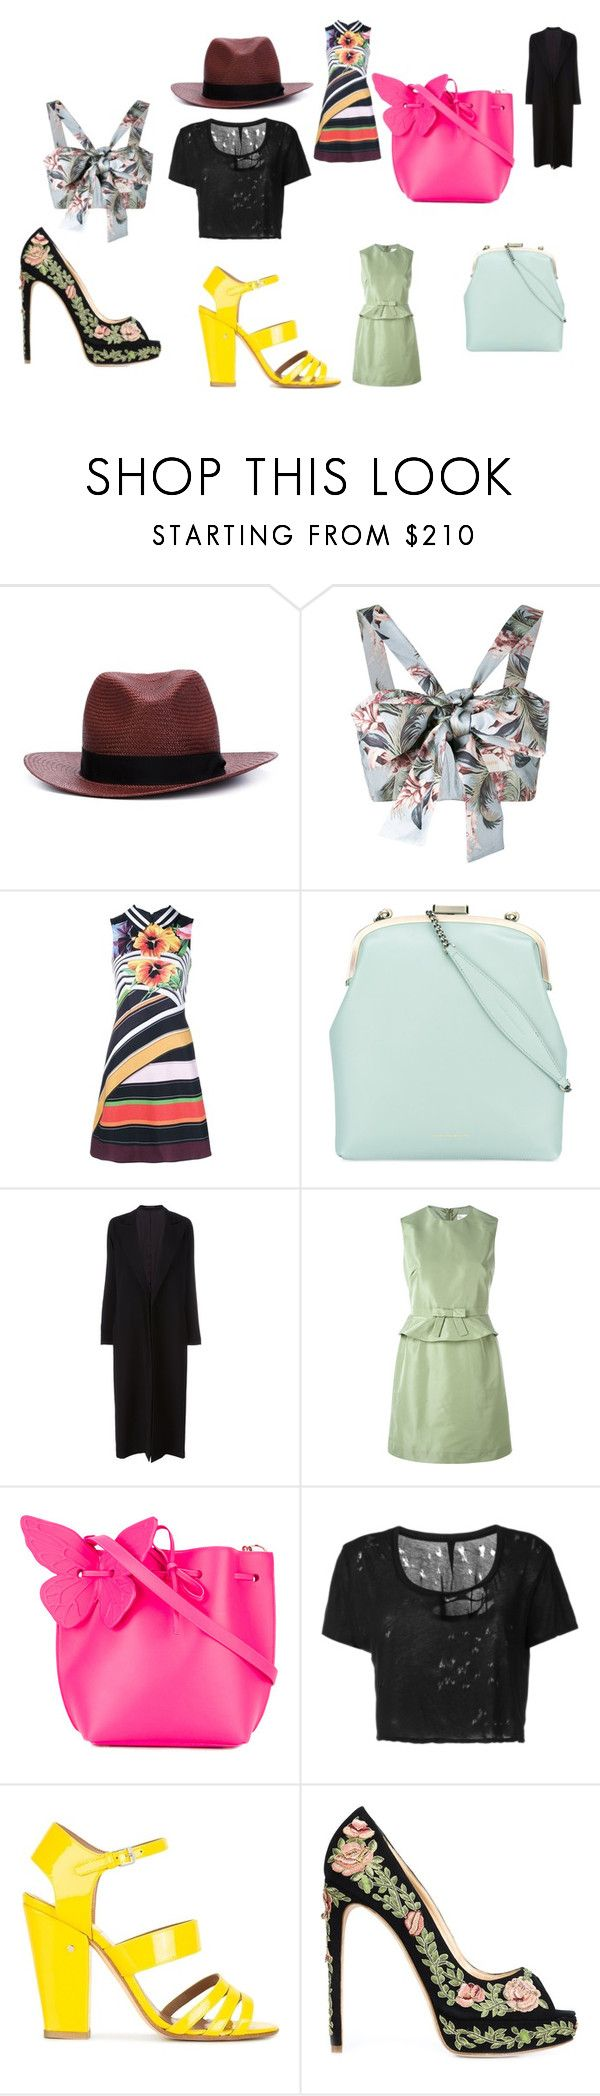 """fashion collection weekend best sale"" by monica022 ❤ liked on Polyvore featuring rag & bone, Zimmermann, Mary Katrantzou, Tammy & Benjamin, Yohji Yamamoto, RED Valentino, Sophia Webster, Unravel, Laurence Dacade and Marchesa"